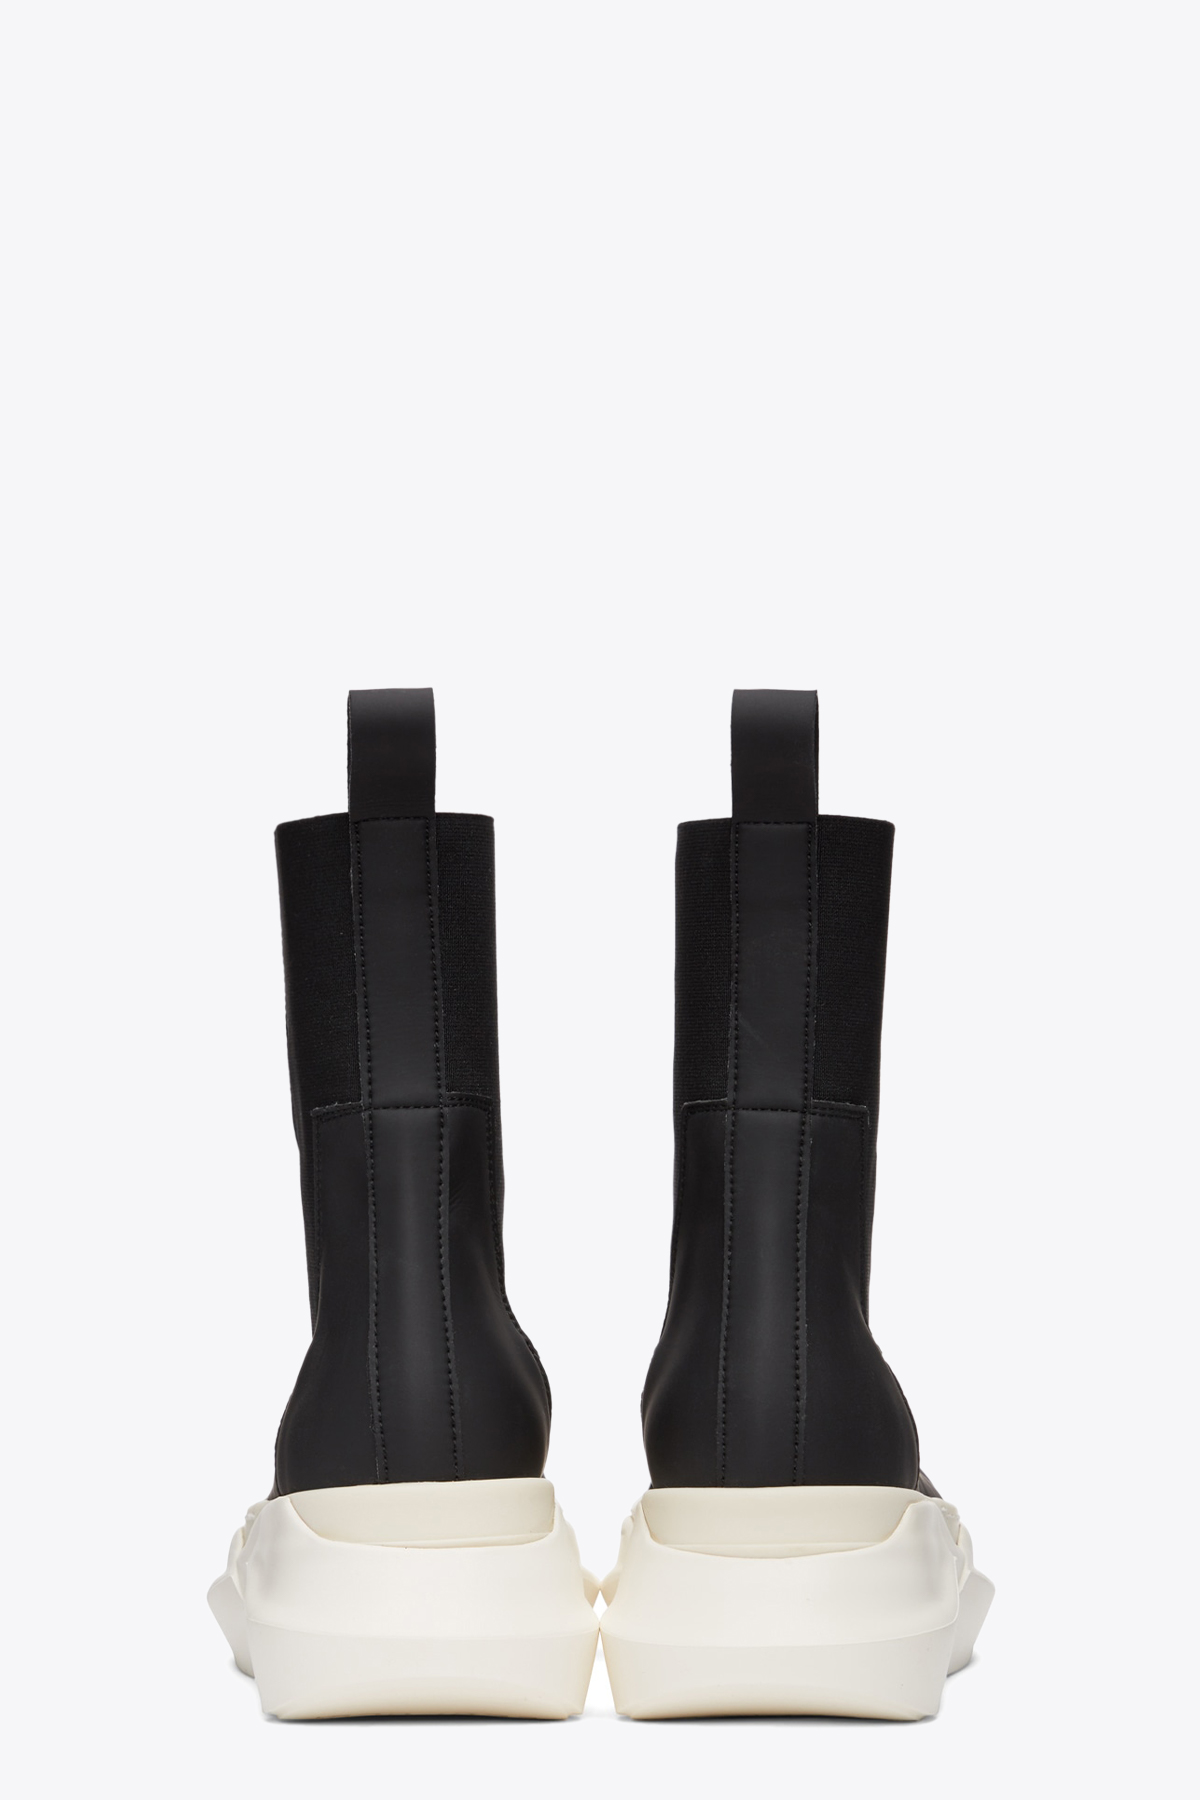 STIVALETTO IN PELLE GOMMATA NERA CON SUOLA PLATFORM ABSTRACT RICK OWENS-DRKSHDW | 10000039 | DS21S2846 RUH BEETLE ABSTRACT91111